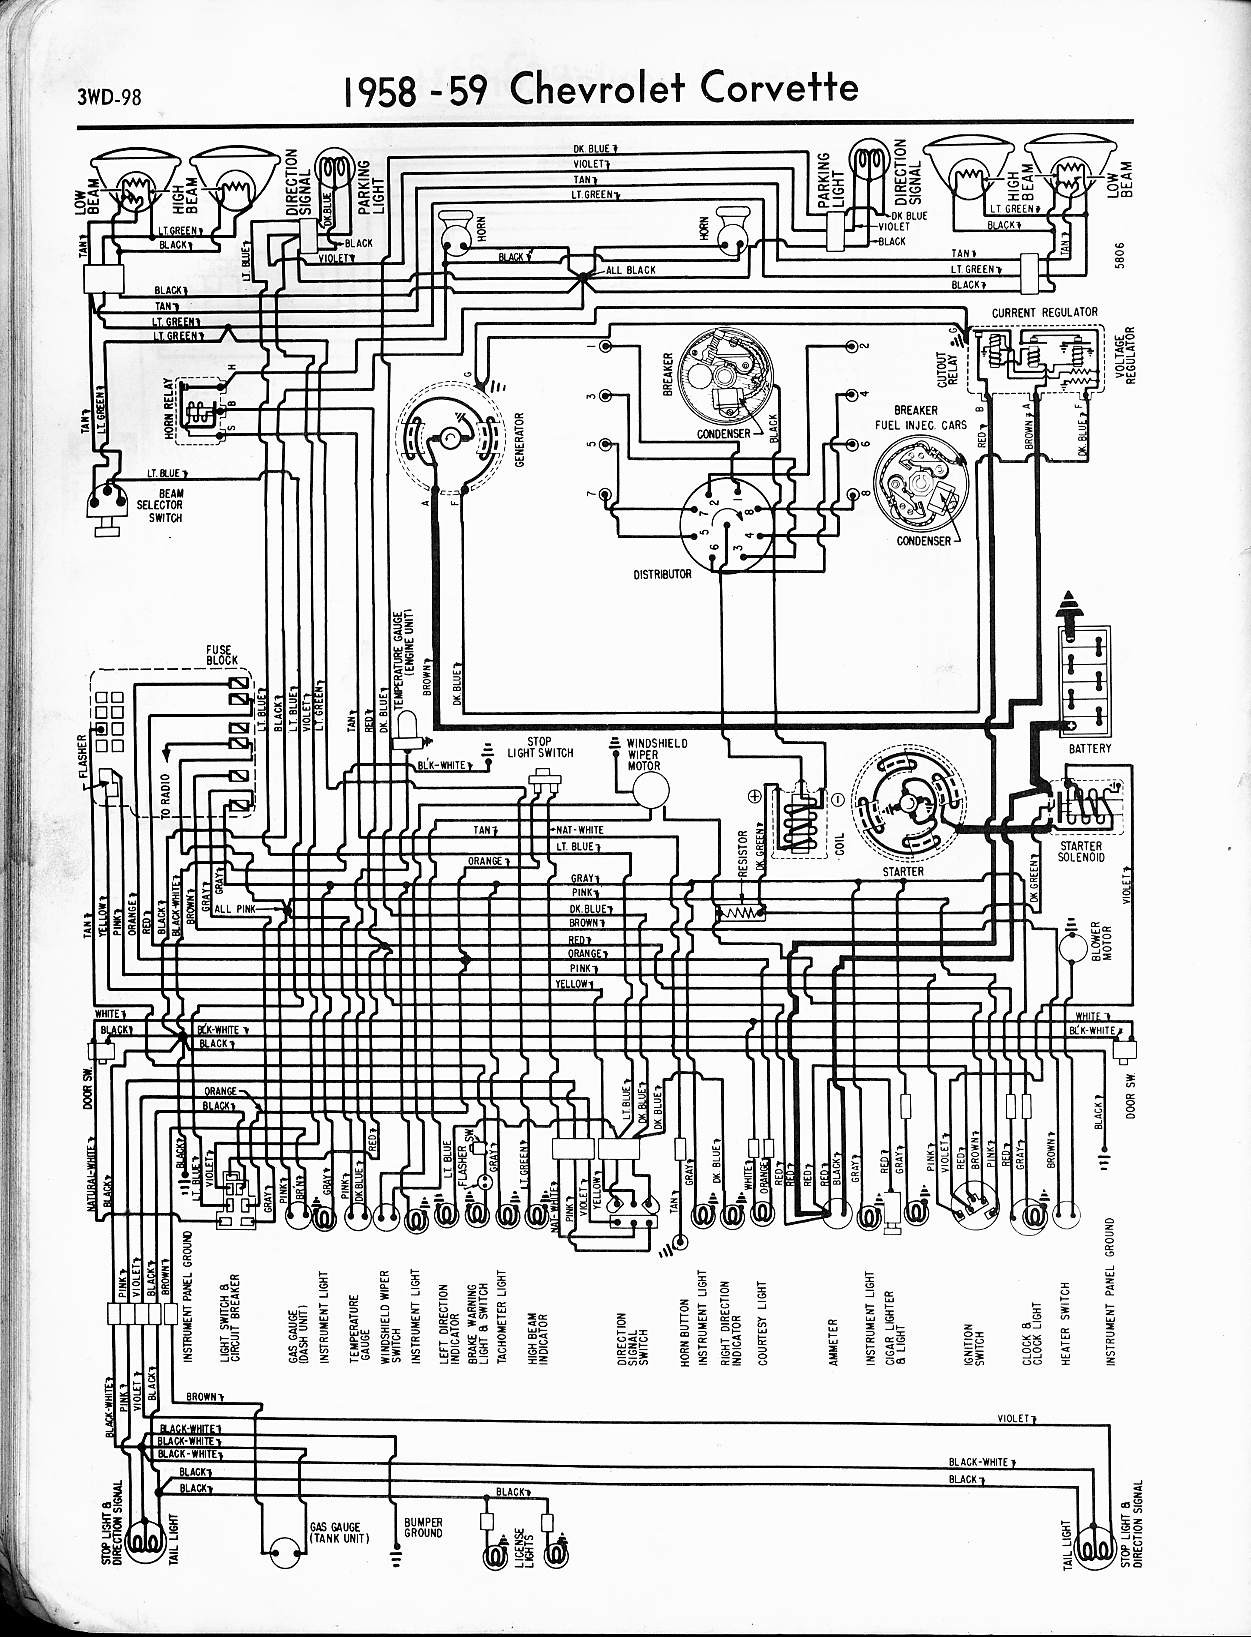 1965 impala wiring diagram images gallery